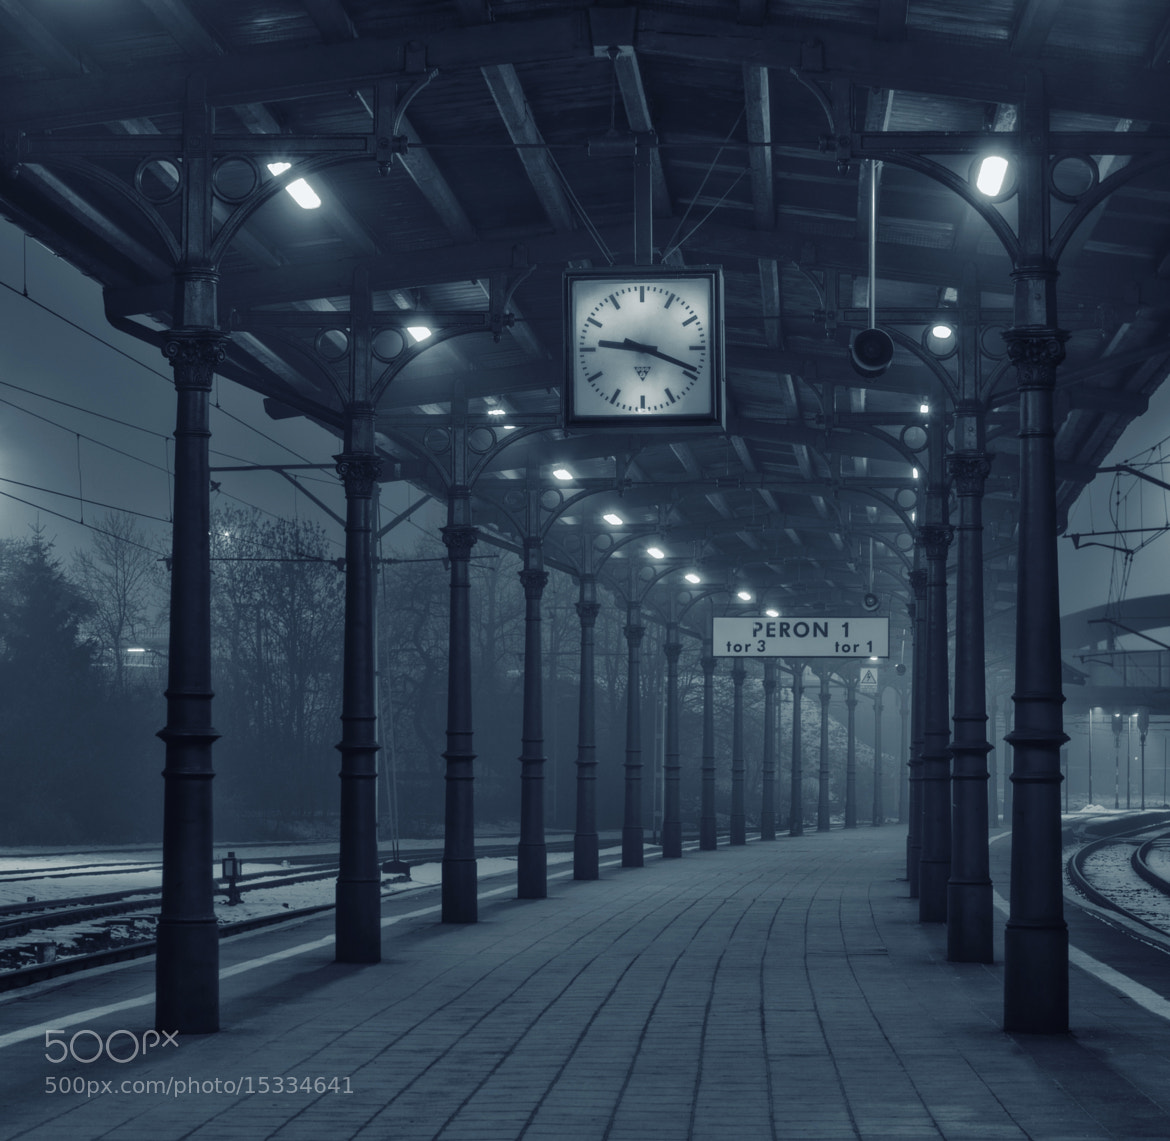 Photograph Old station by Paweł Uchorczak on 500px